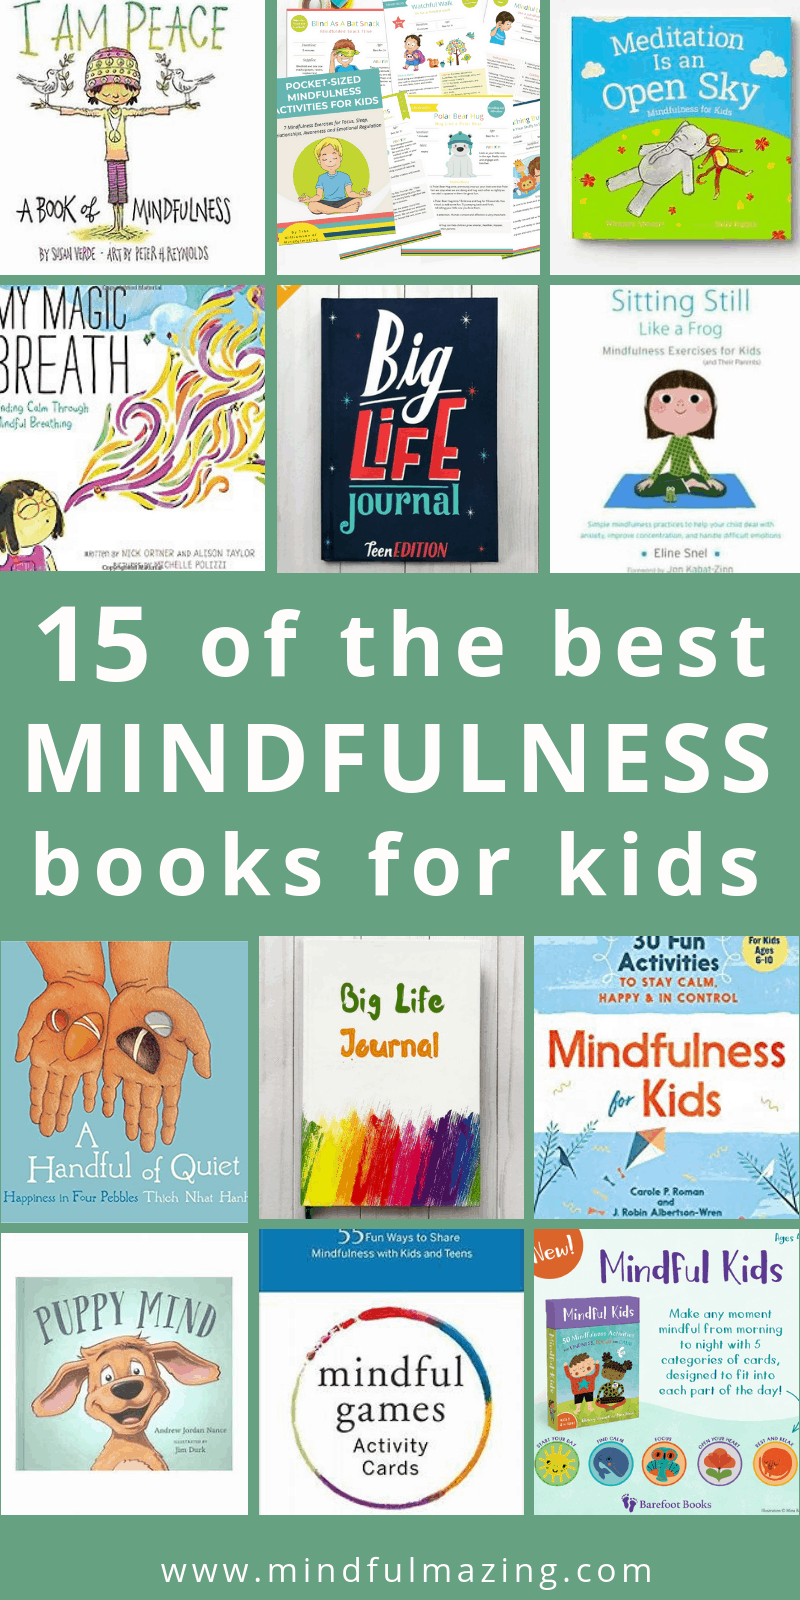 Wondering how to teach your kids about Mindfulness? You'll love these mindfulness books for kids to teach them strategies and skills for calming down, regulating their emotions, focusing, sleeping better, and developing kindness and compassion. Happy (and blissful) reading!